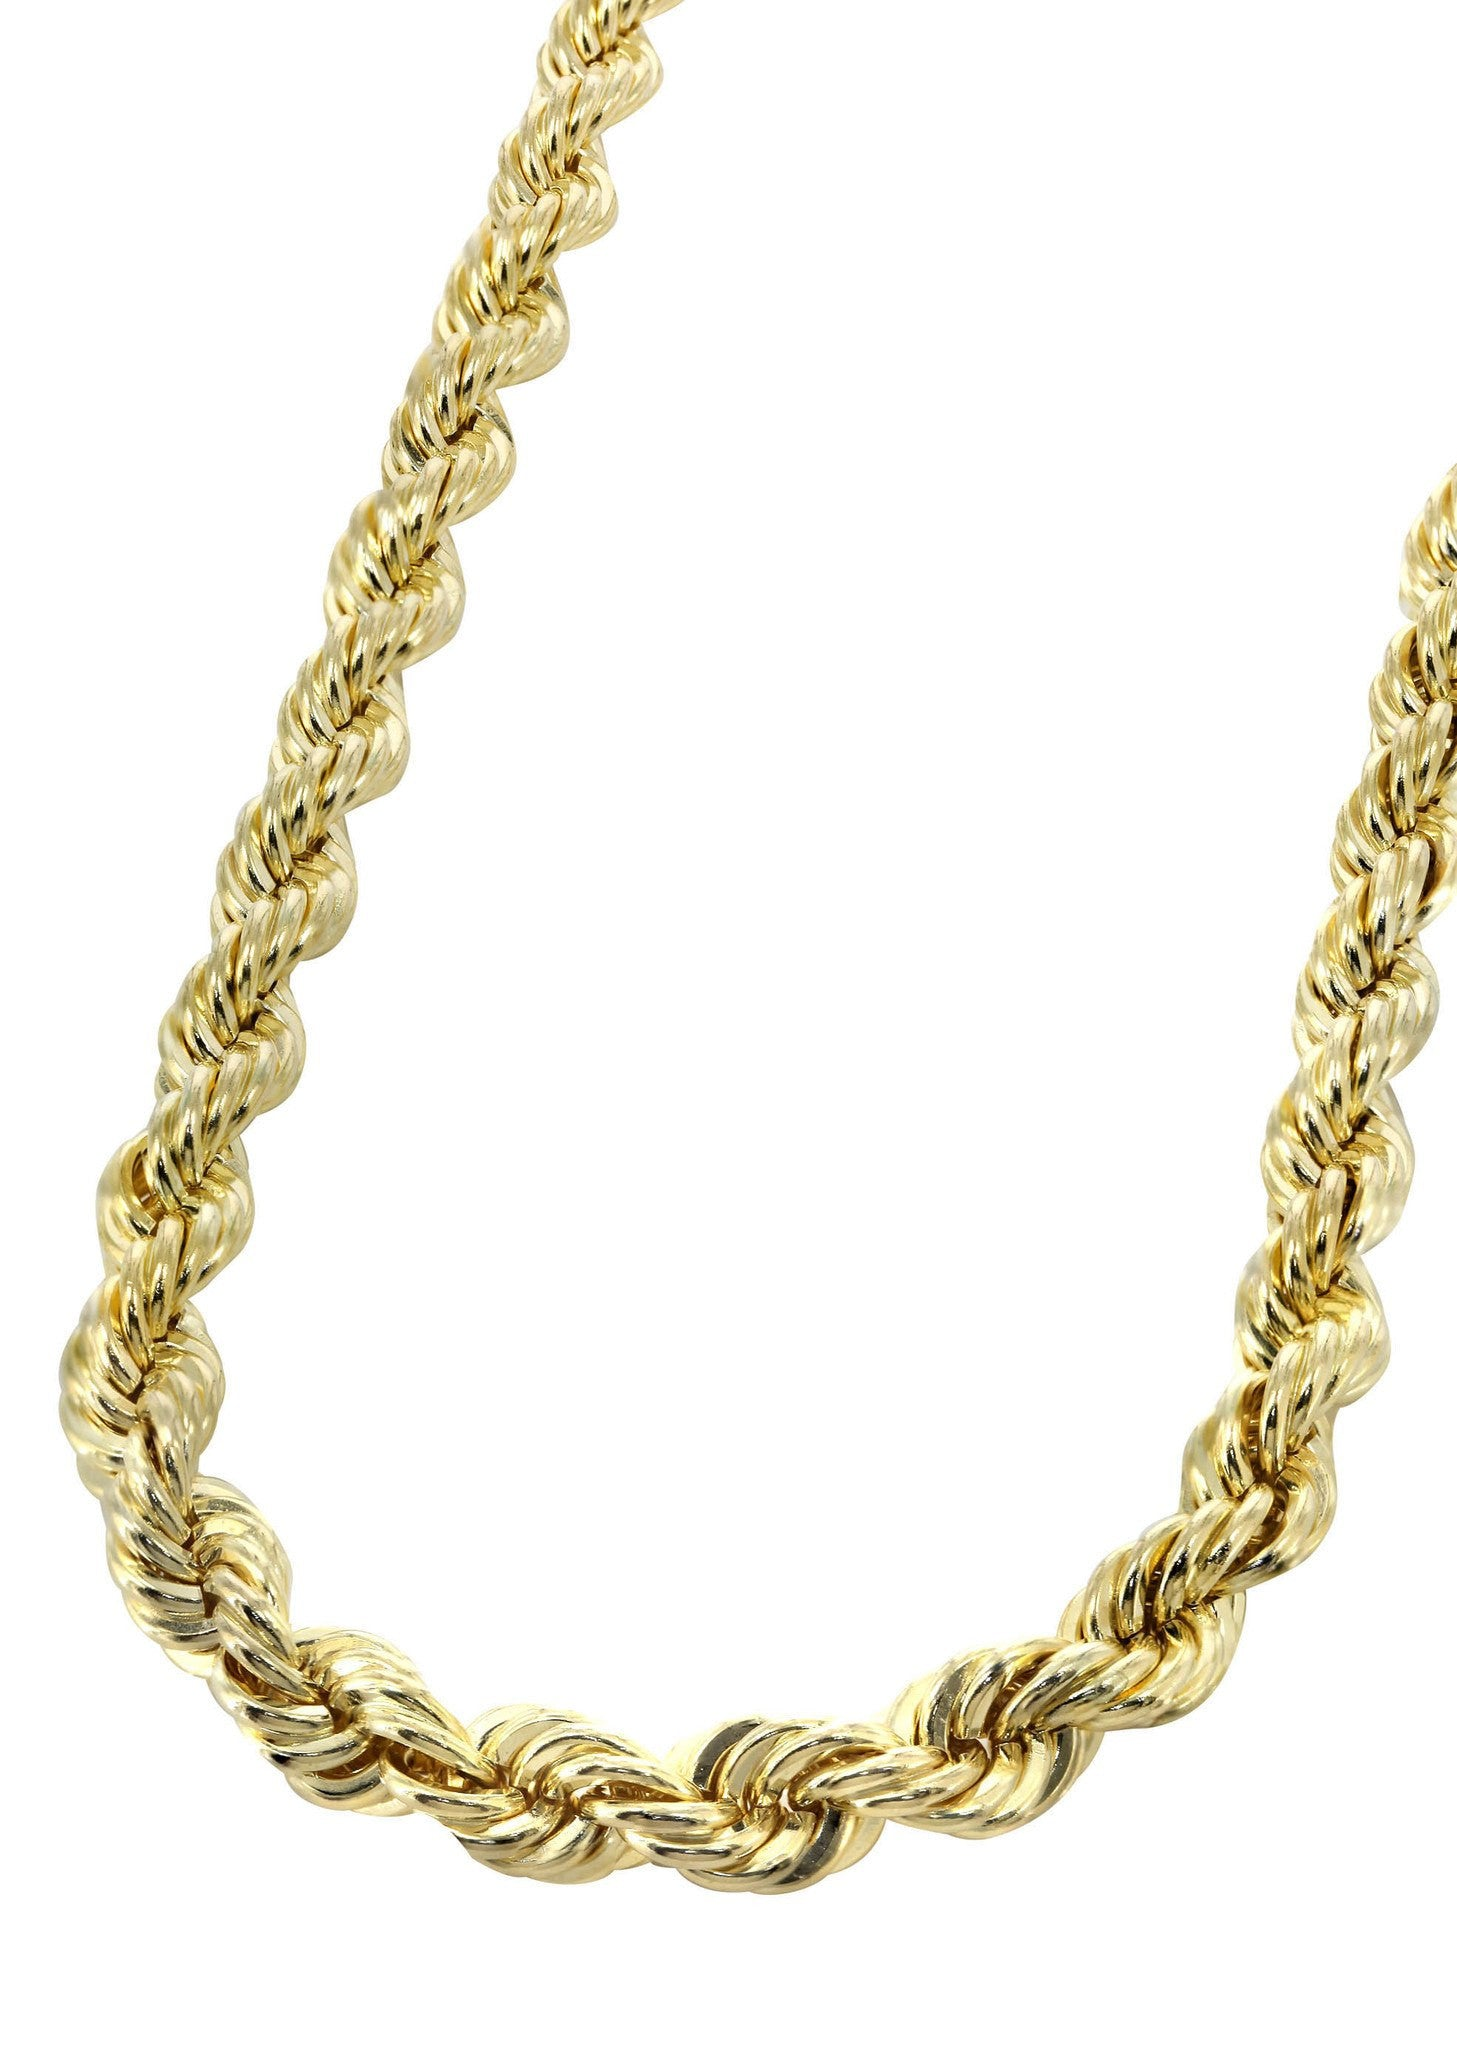 14k Gold Chain Solid Rope Chain Frostnyc